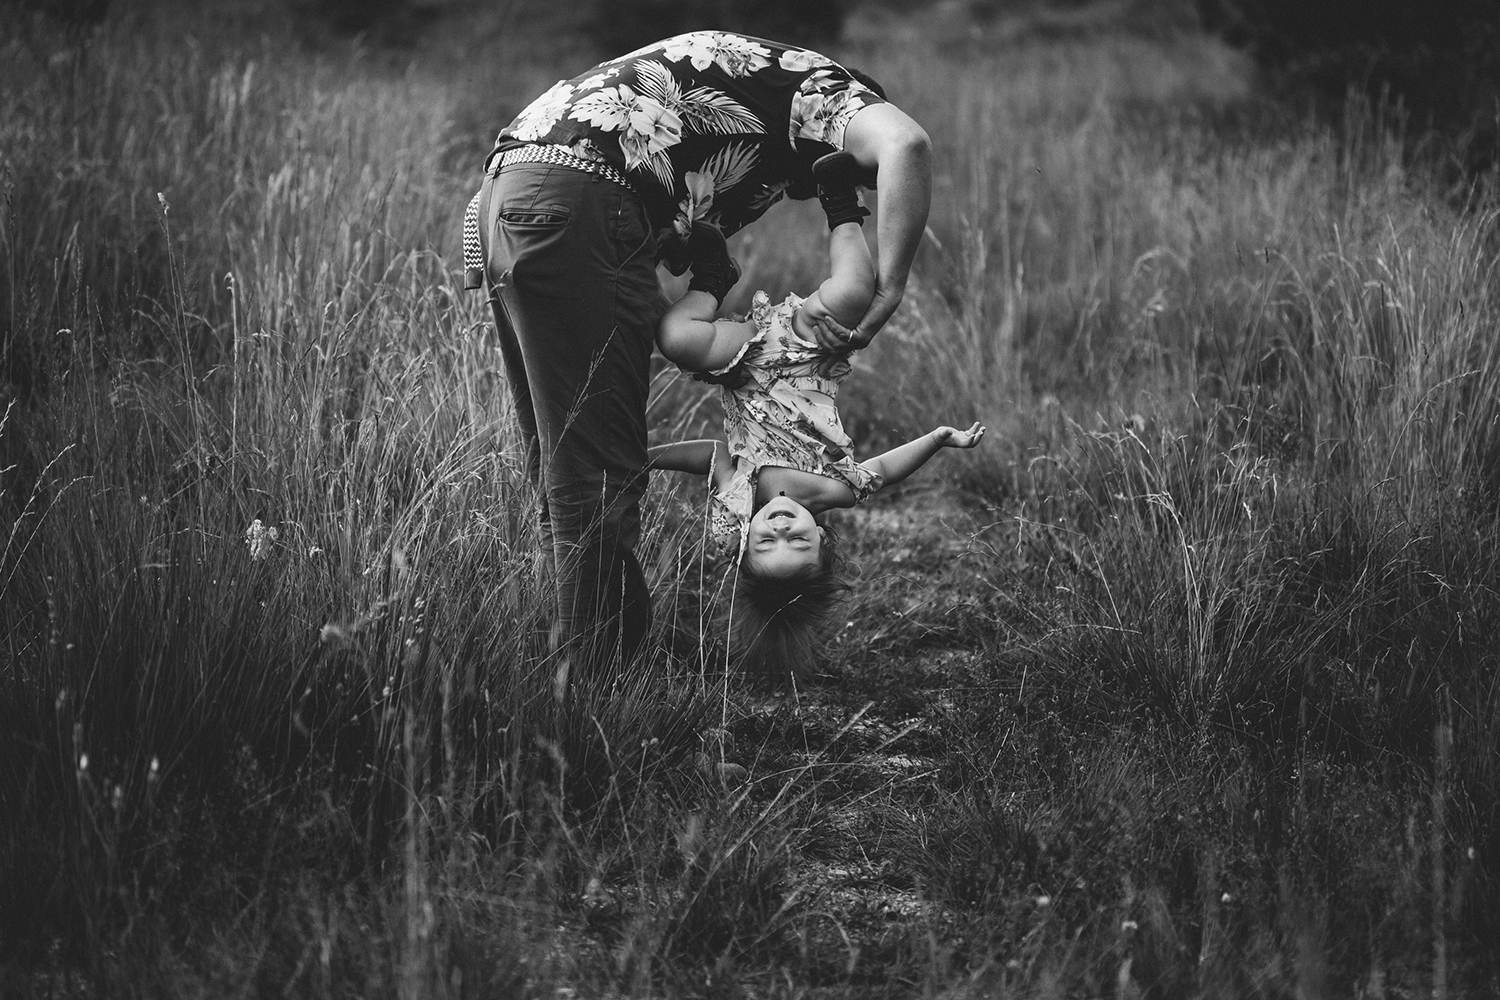 Family outdoor photo session. dad playing with daughter. Rebecca Rinaldi Photography.